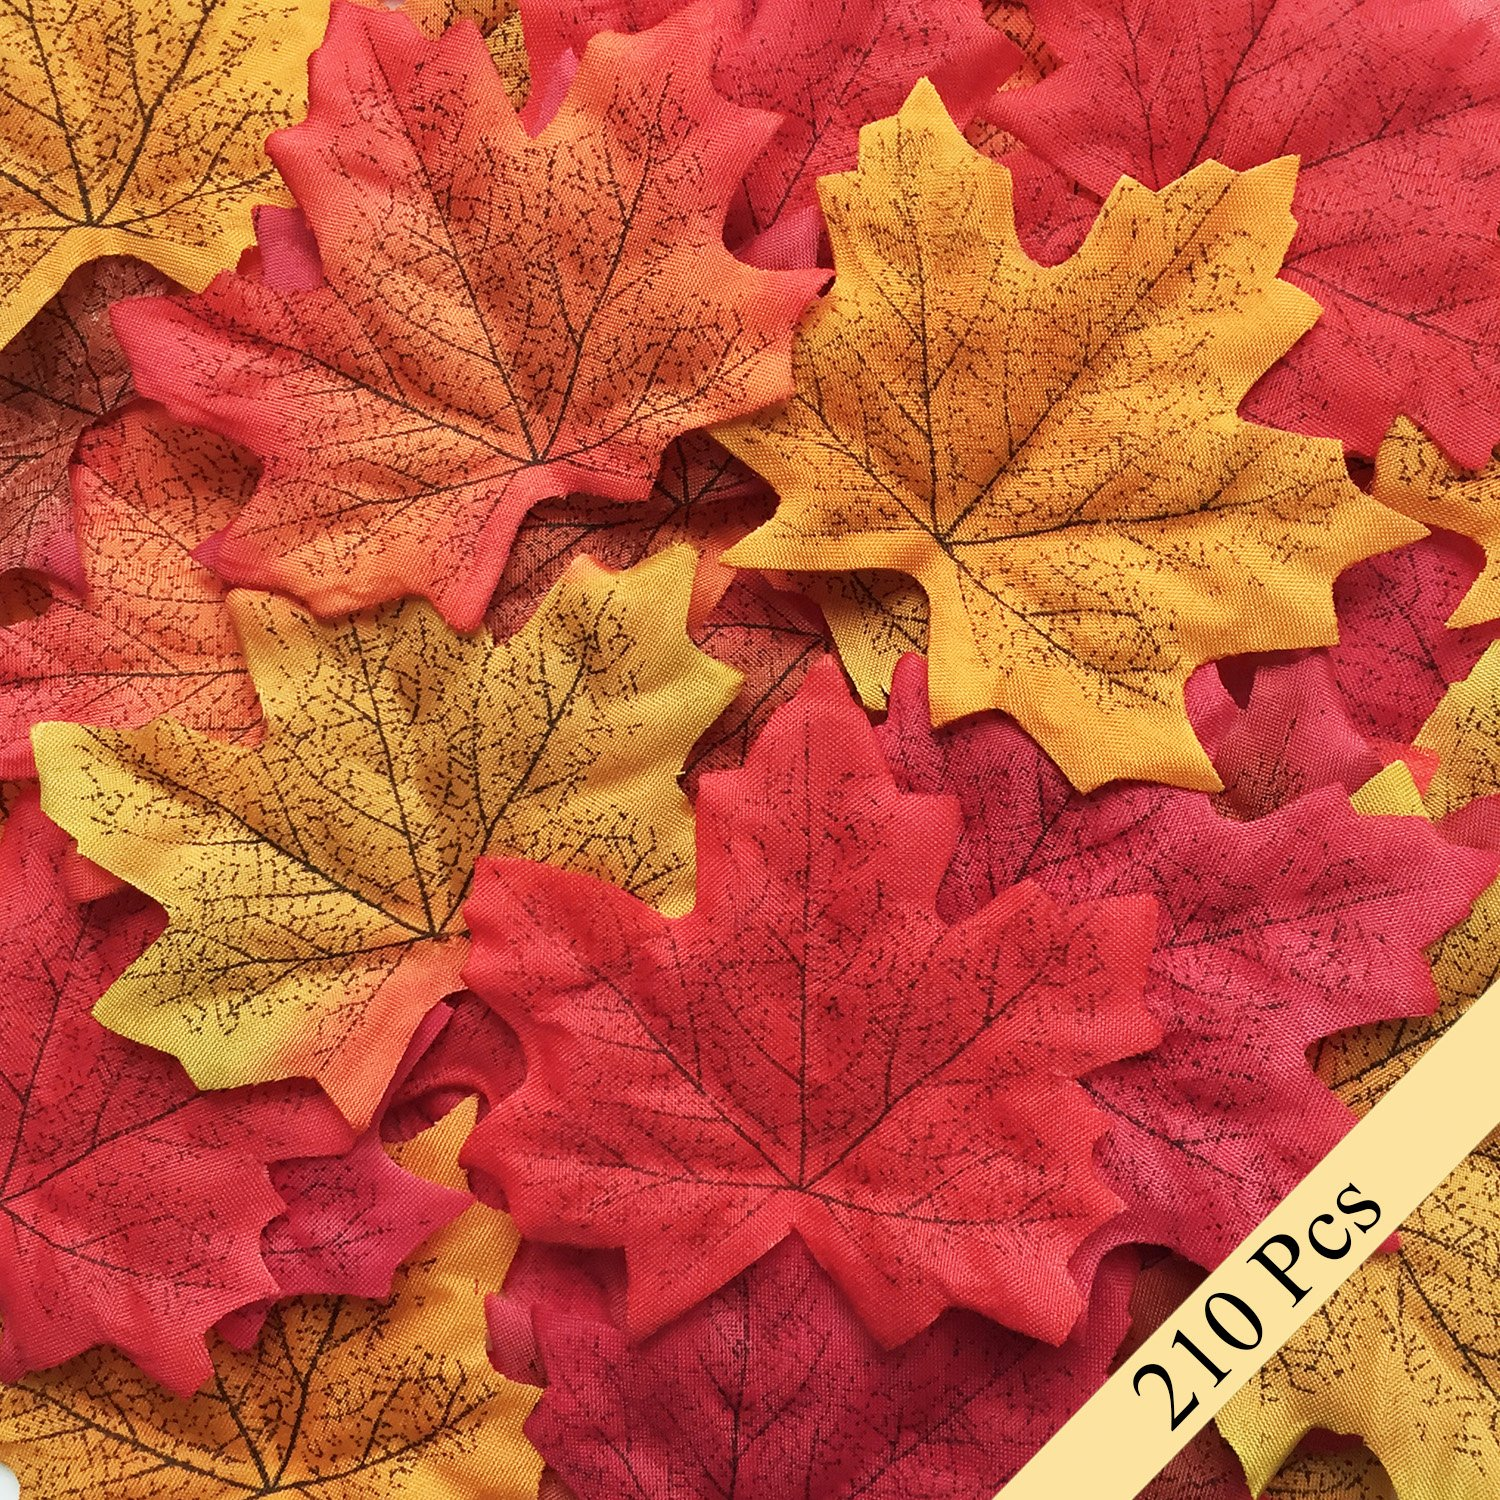 Bassion 210 Pcs Assorted Mixed Fall Colored Artificial Maple Leaves for Weddings, Events